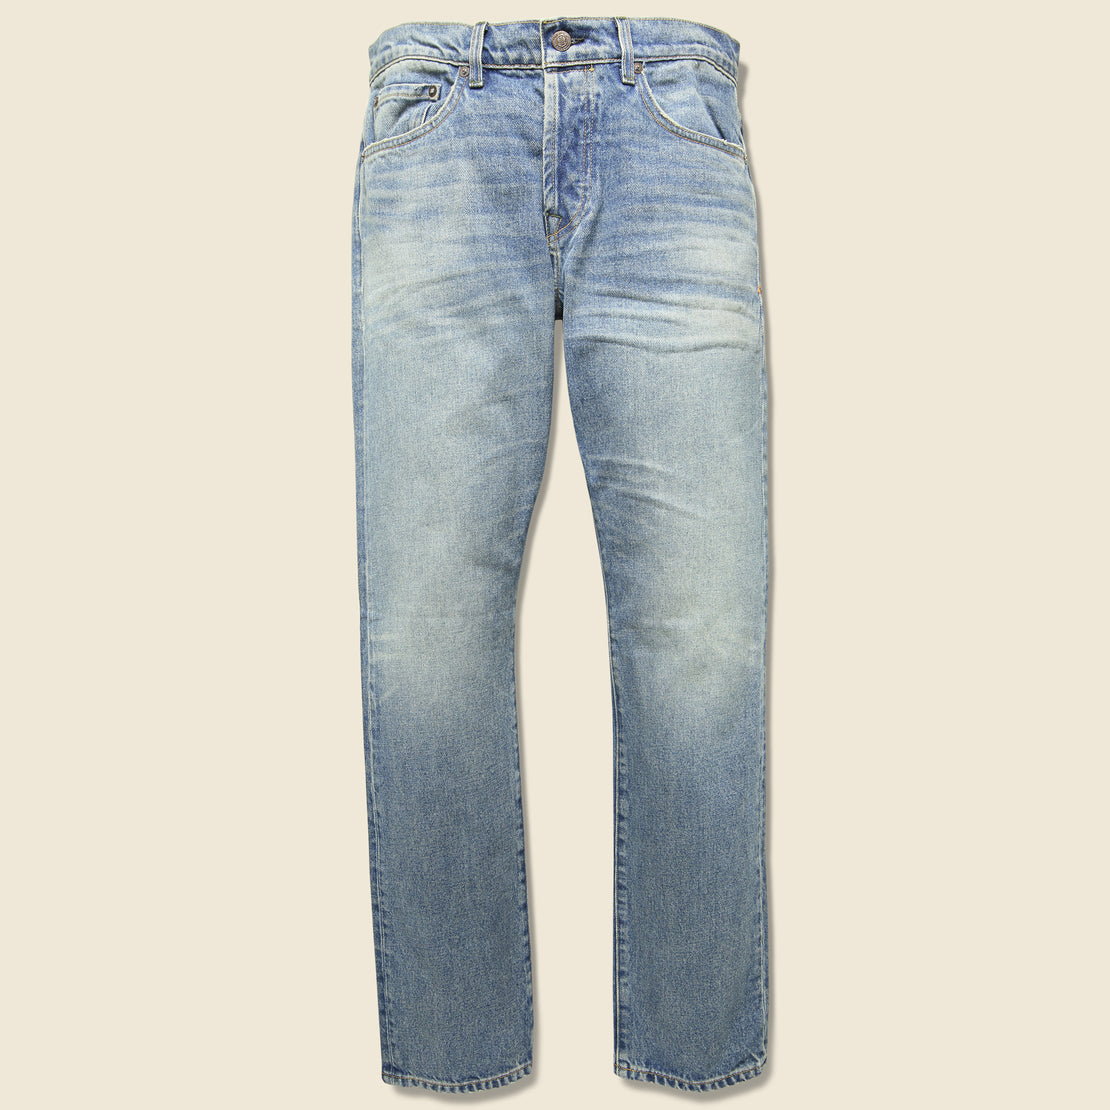 Imogene + Willie Barton Slim Jean - Winslow Wash